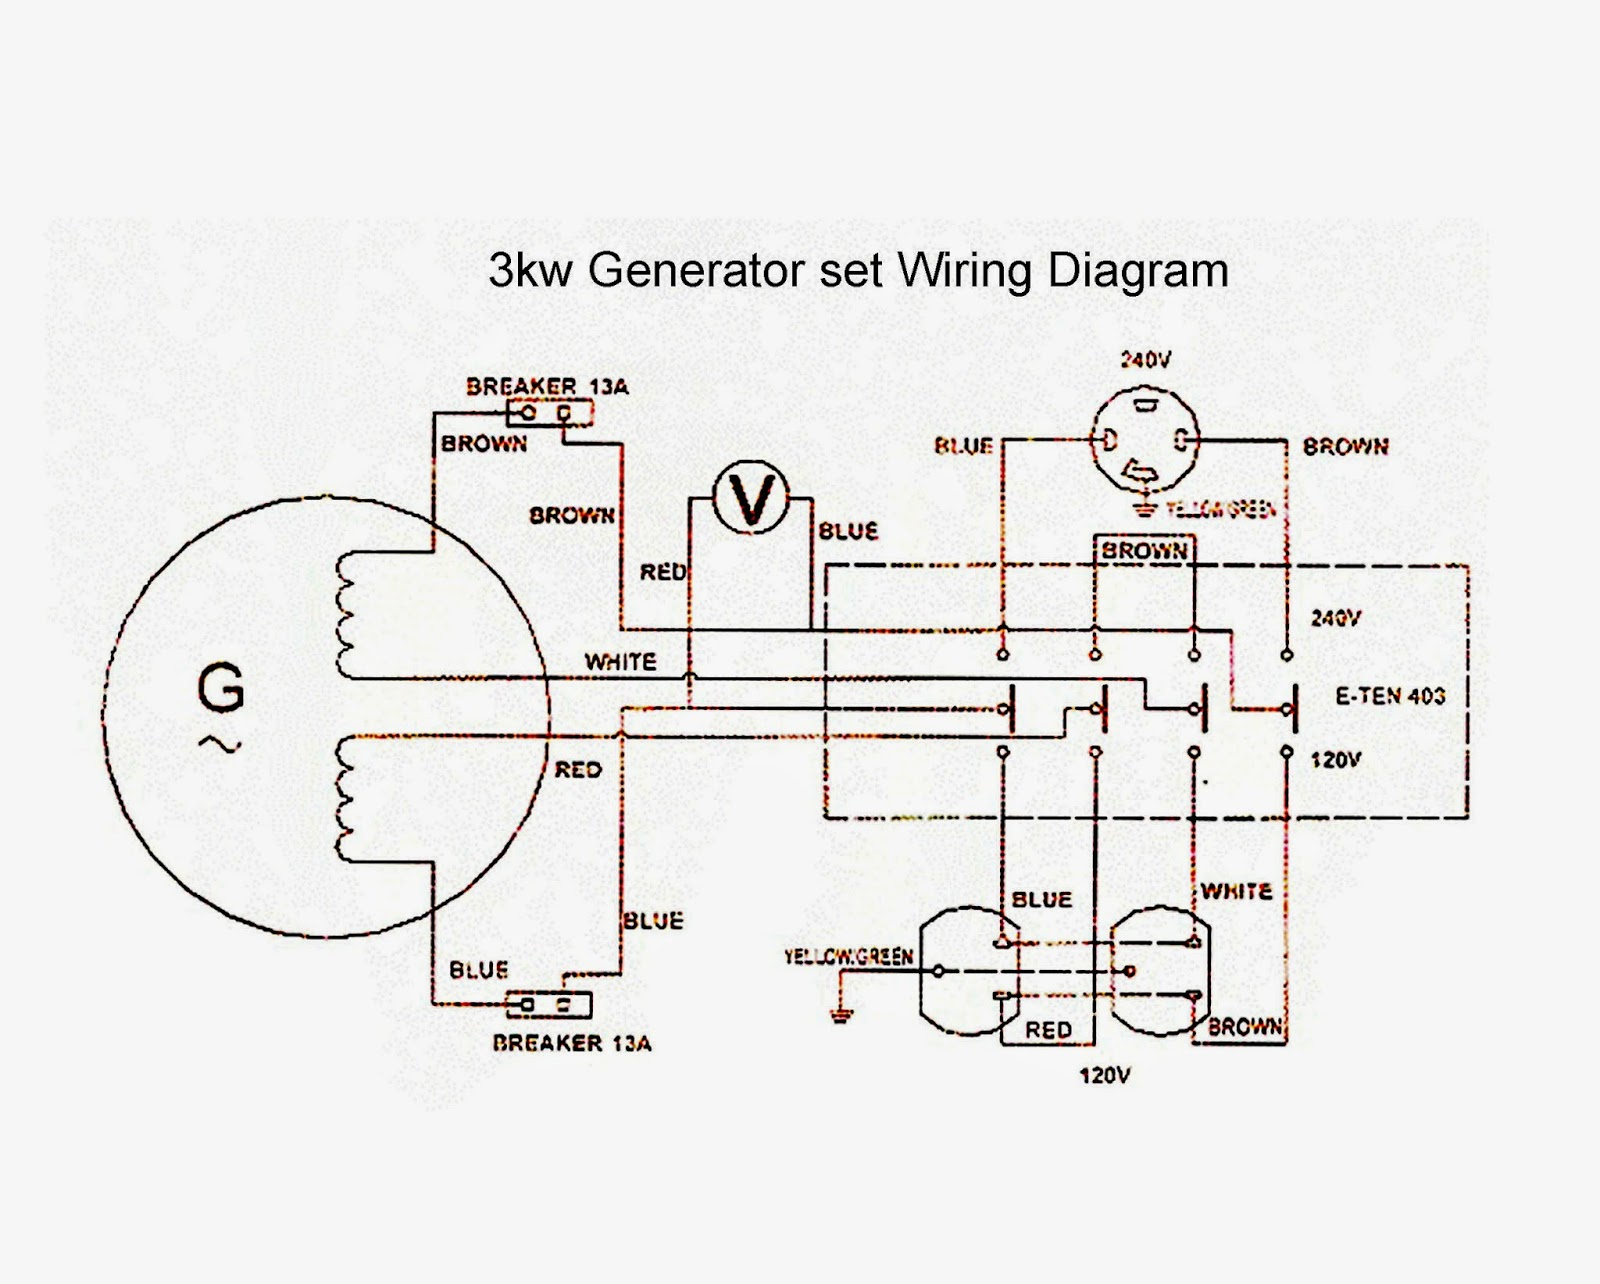 medium resolution of onan emerald generator wiring diagram free download wiring library rh 95 skriptoase de 4kw onan generator wiring diagram generator onan wiring circuit